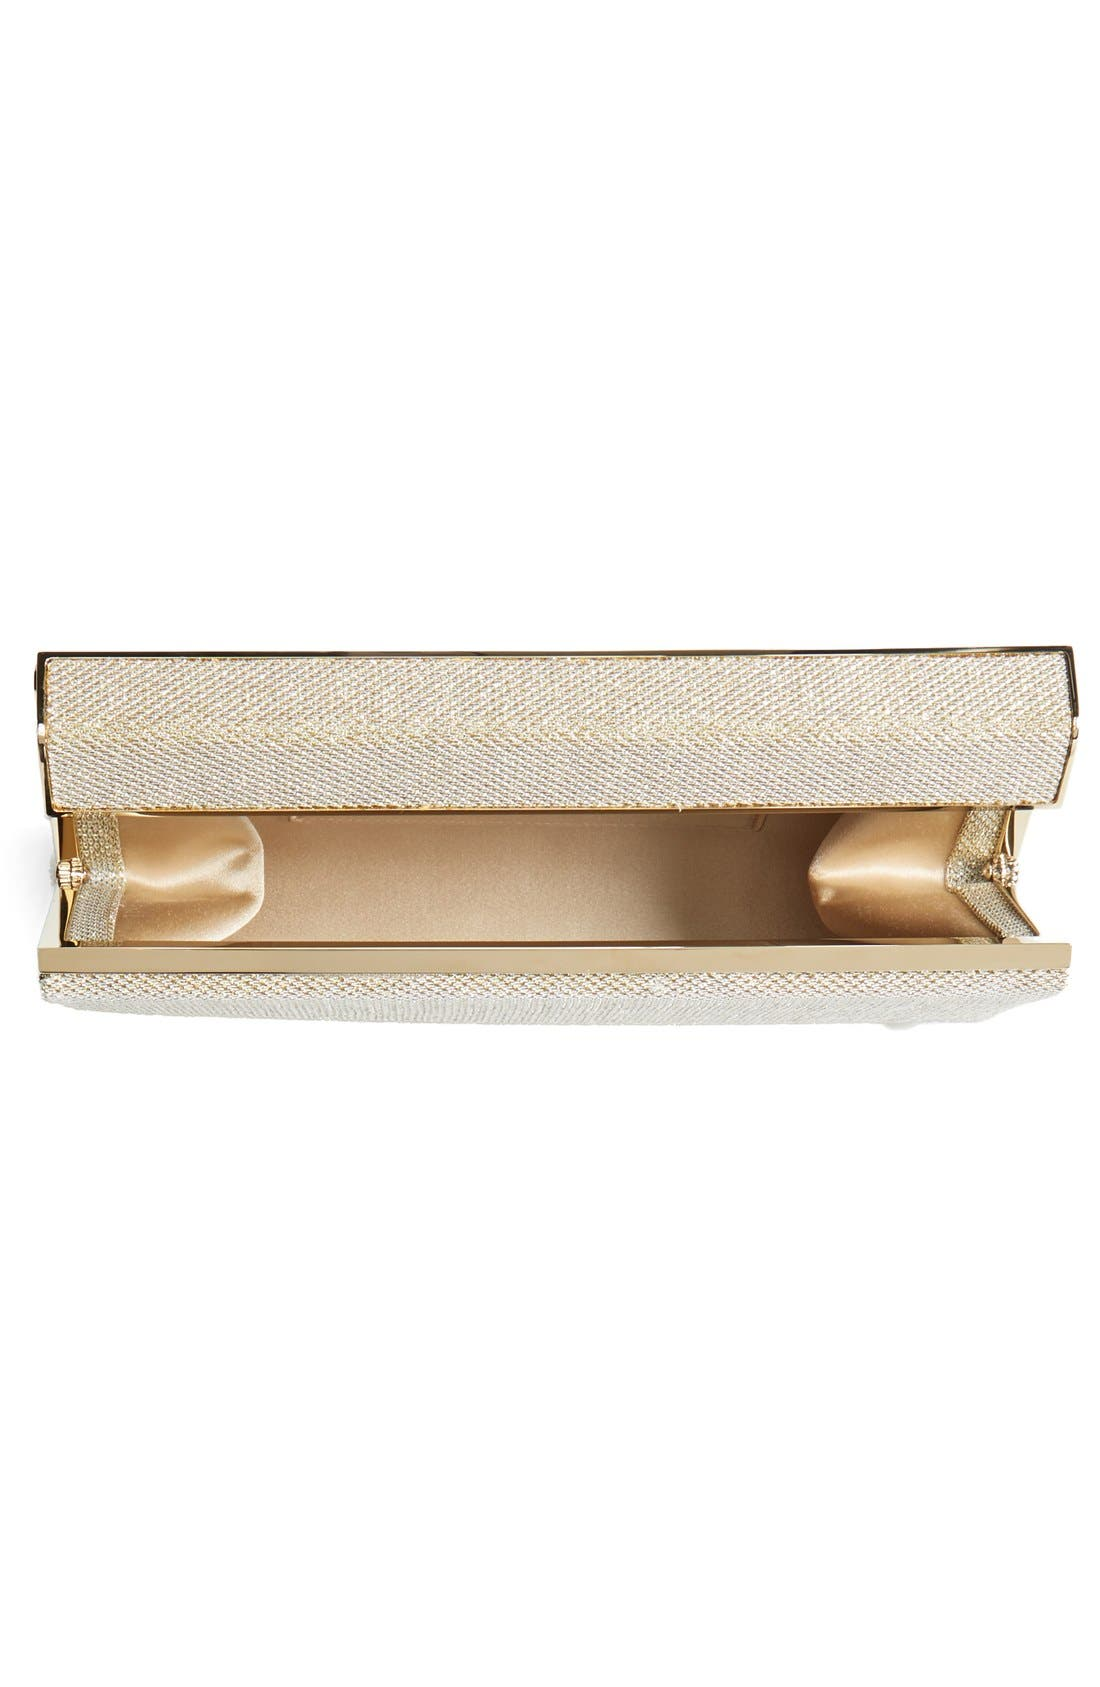 Alternate Image 3  - Jimmy Choo 'Cayla' Lamé Glitter Clutch